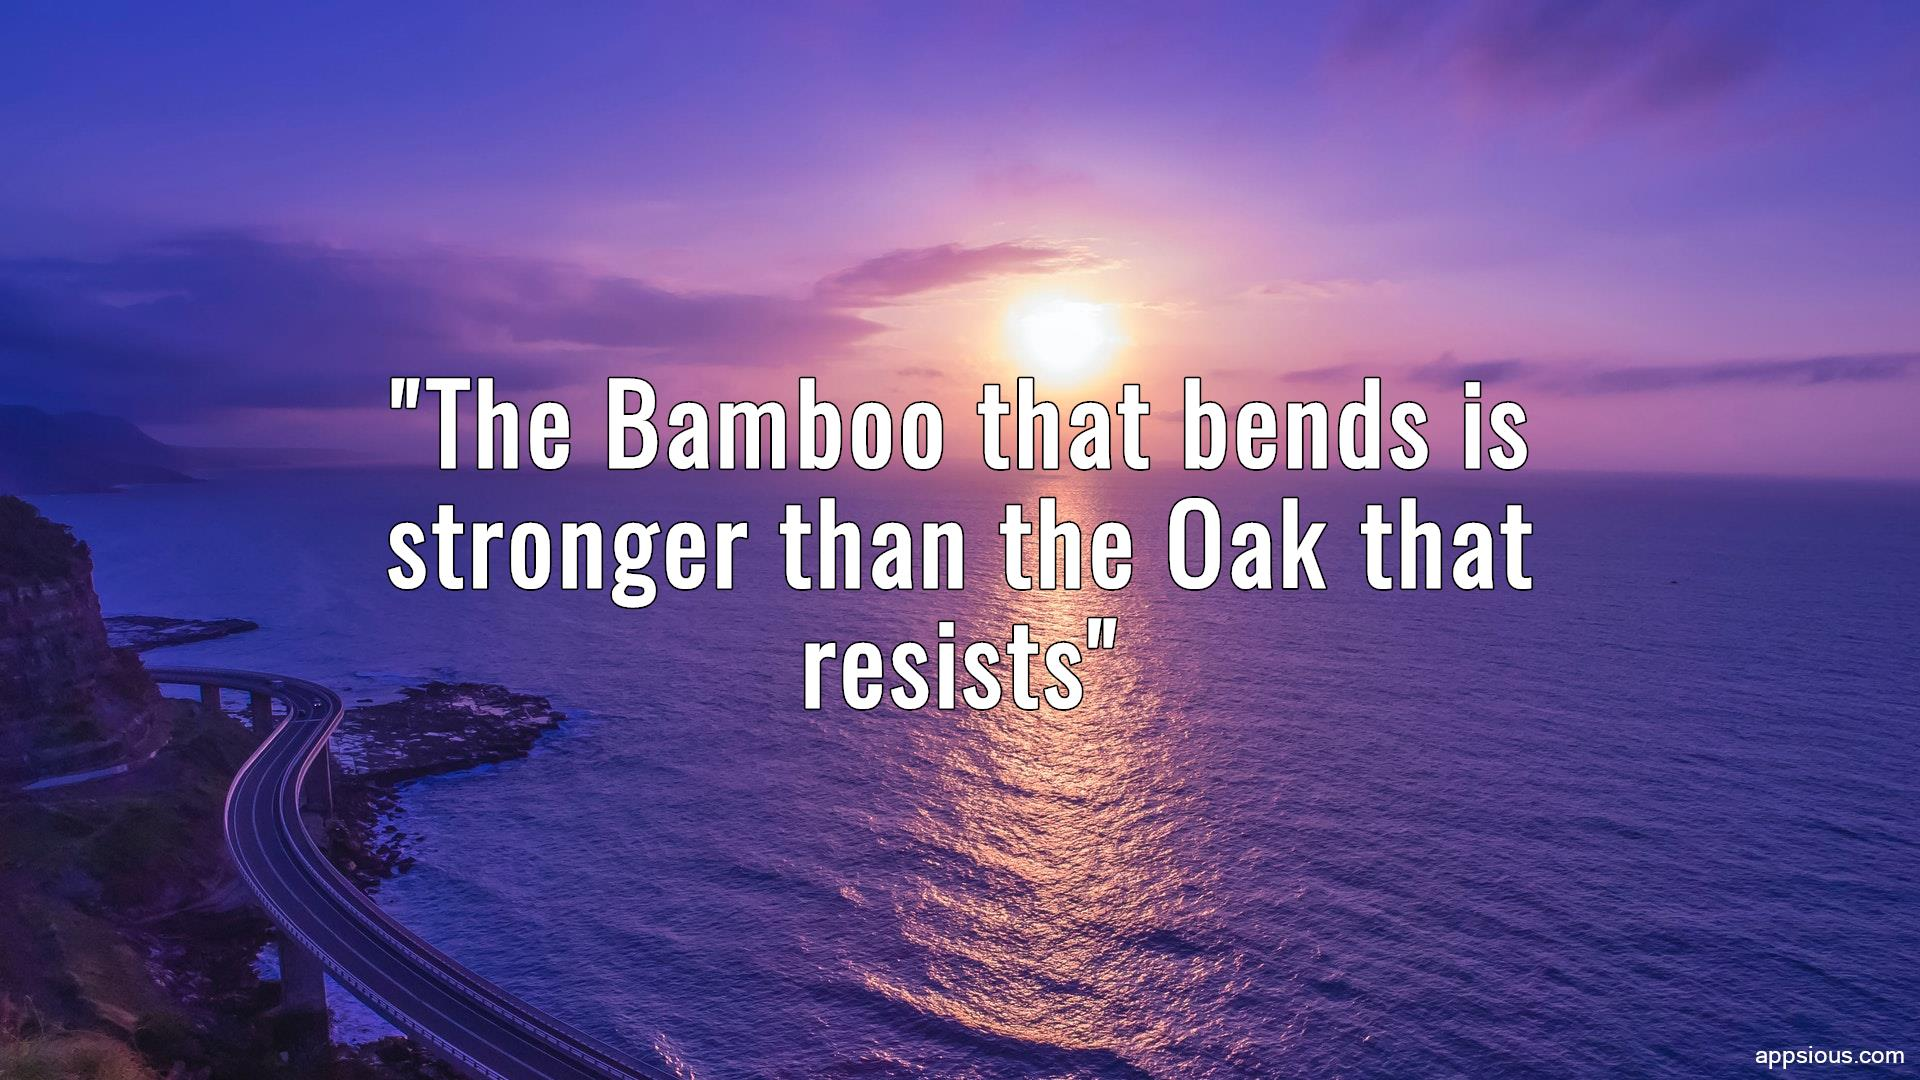 The Bamboo that bends is stronger than the Oak that resists